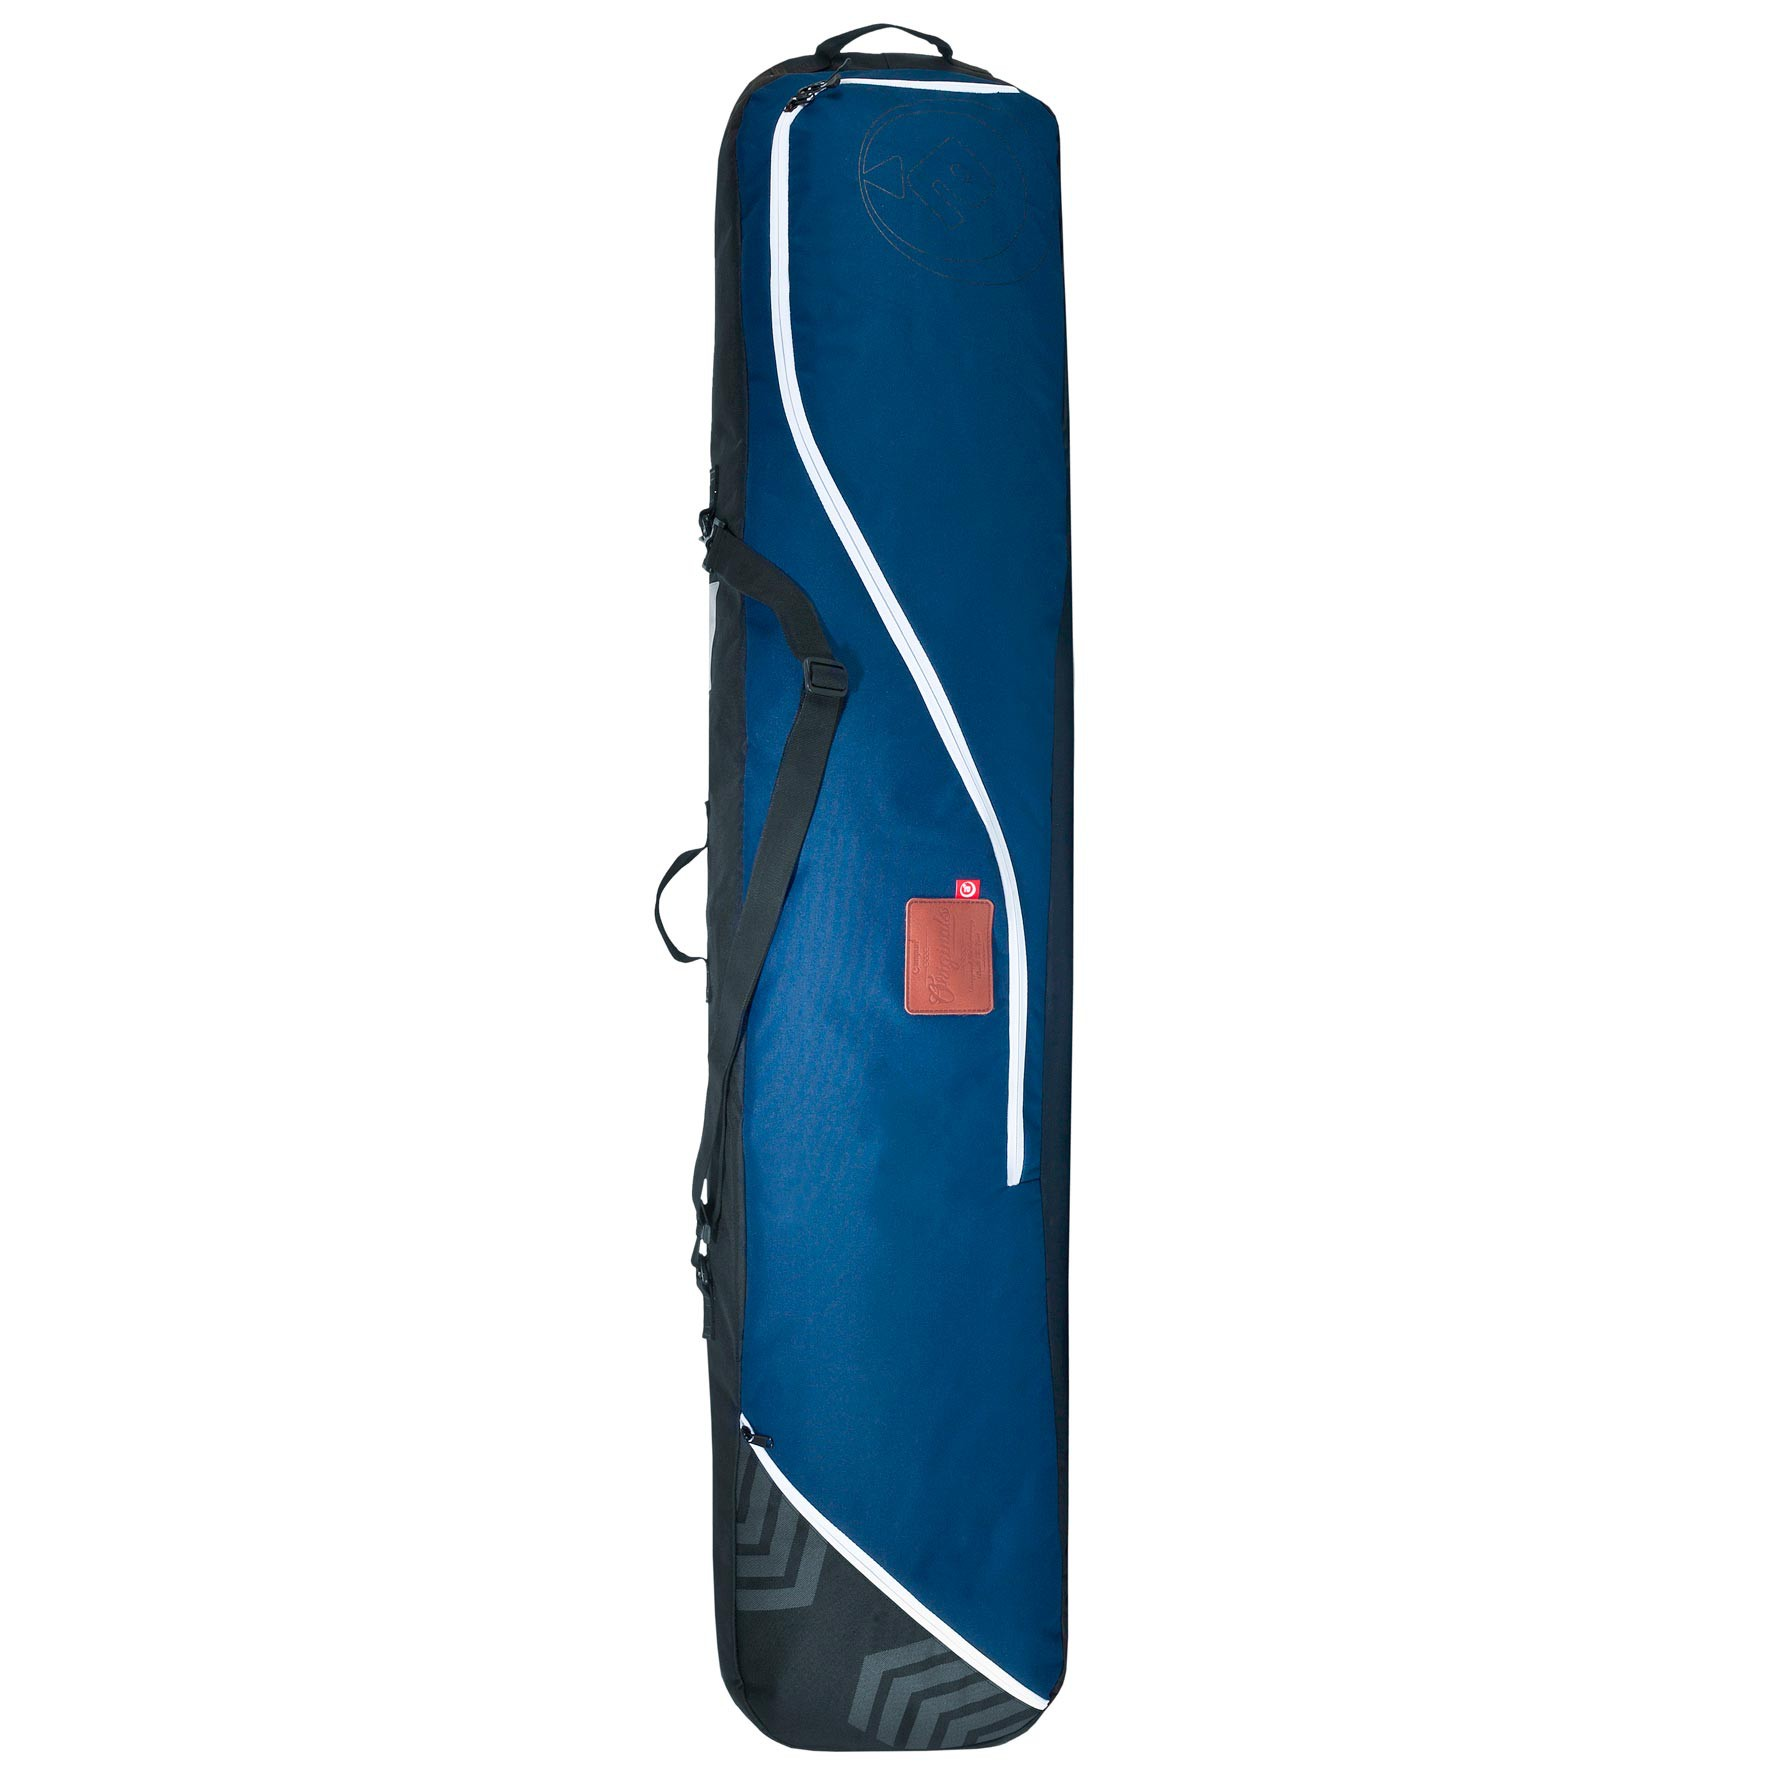 Obal na snowboard Amplifi Bump Bag deep blue